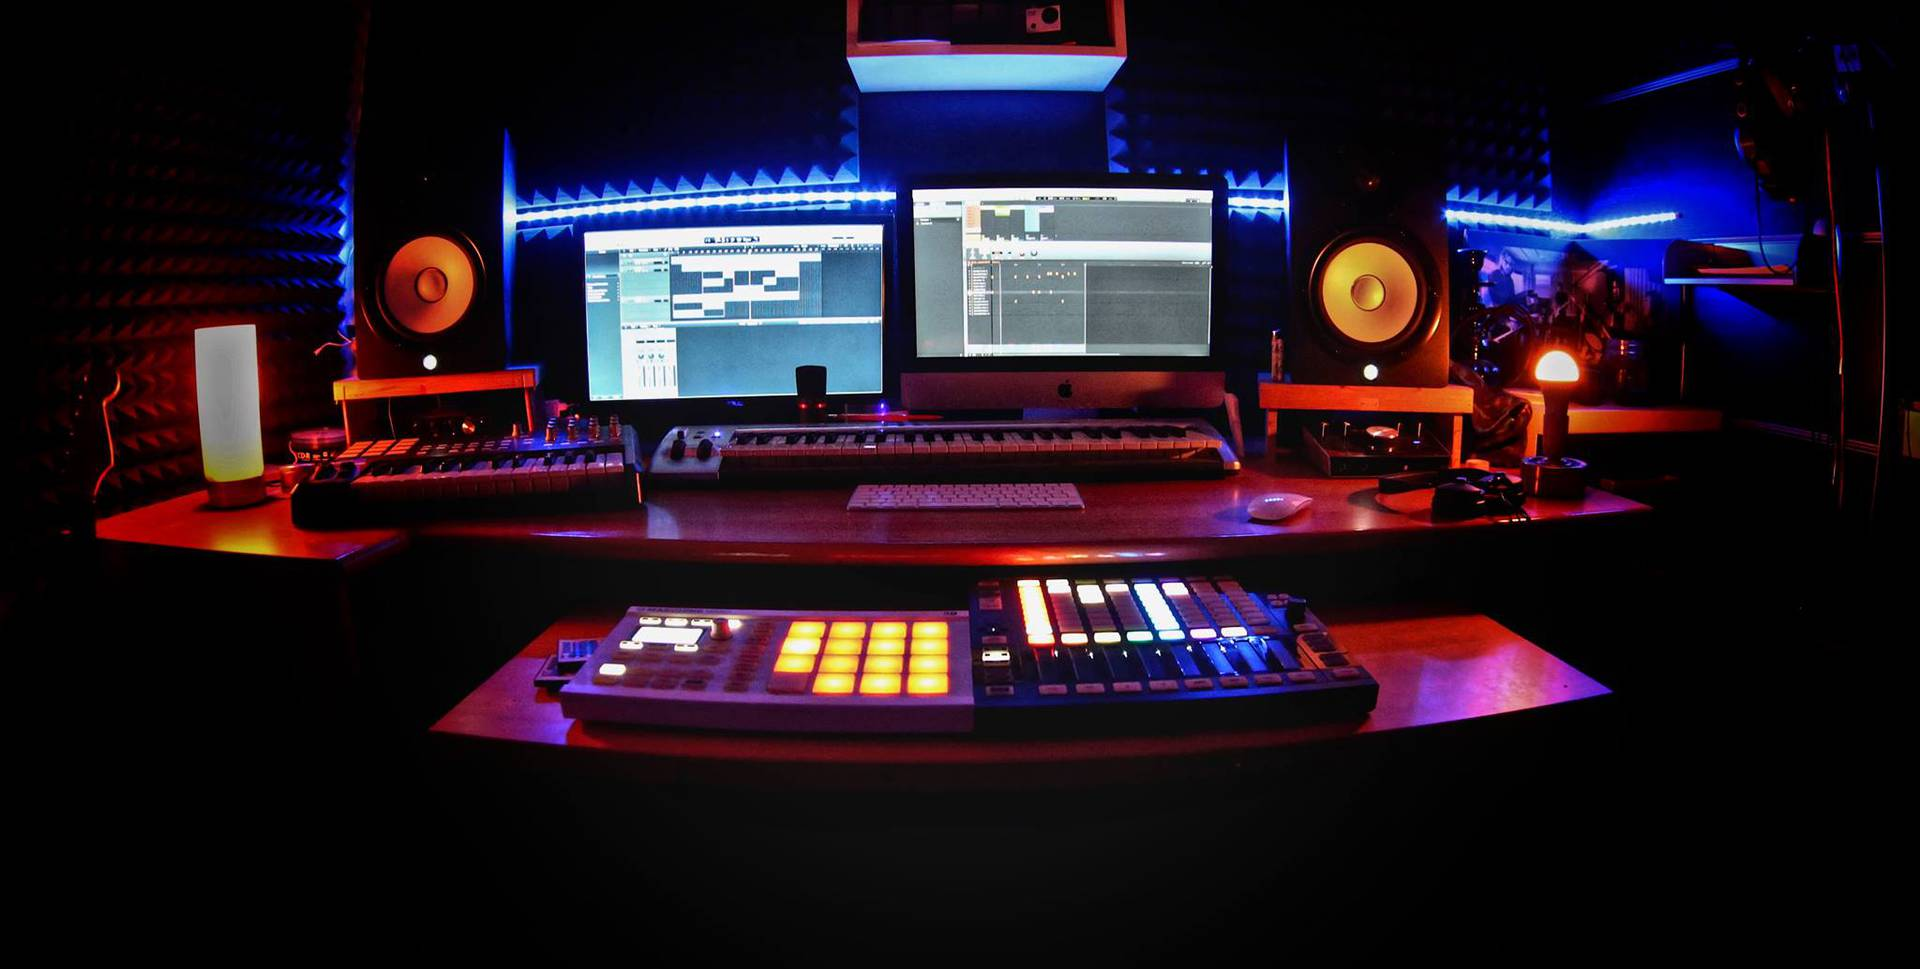 CLOCKBEATS STUDIO VERONA - THE ART OF HIP-HOP